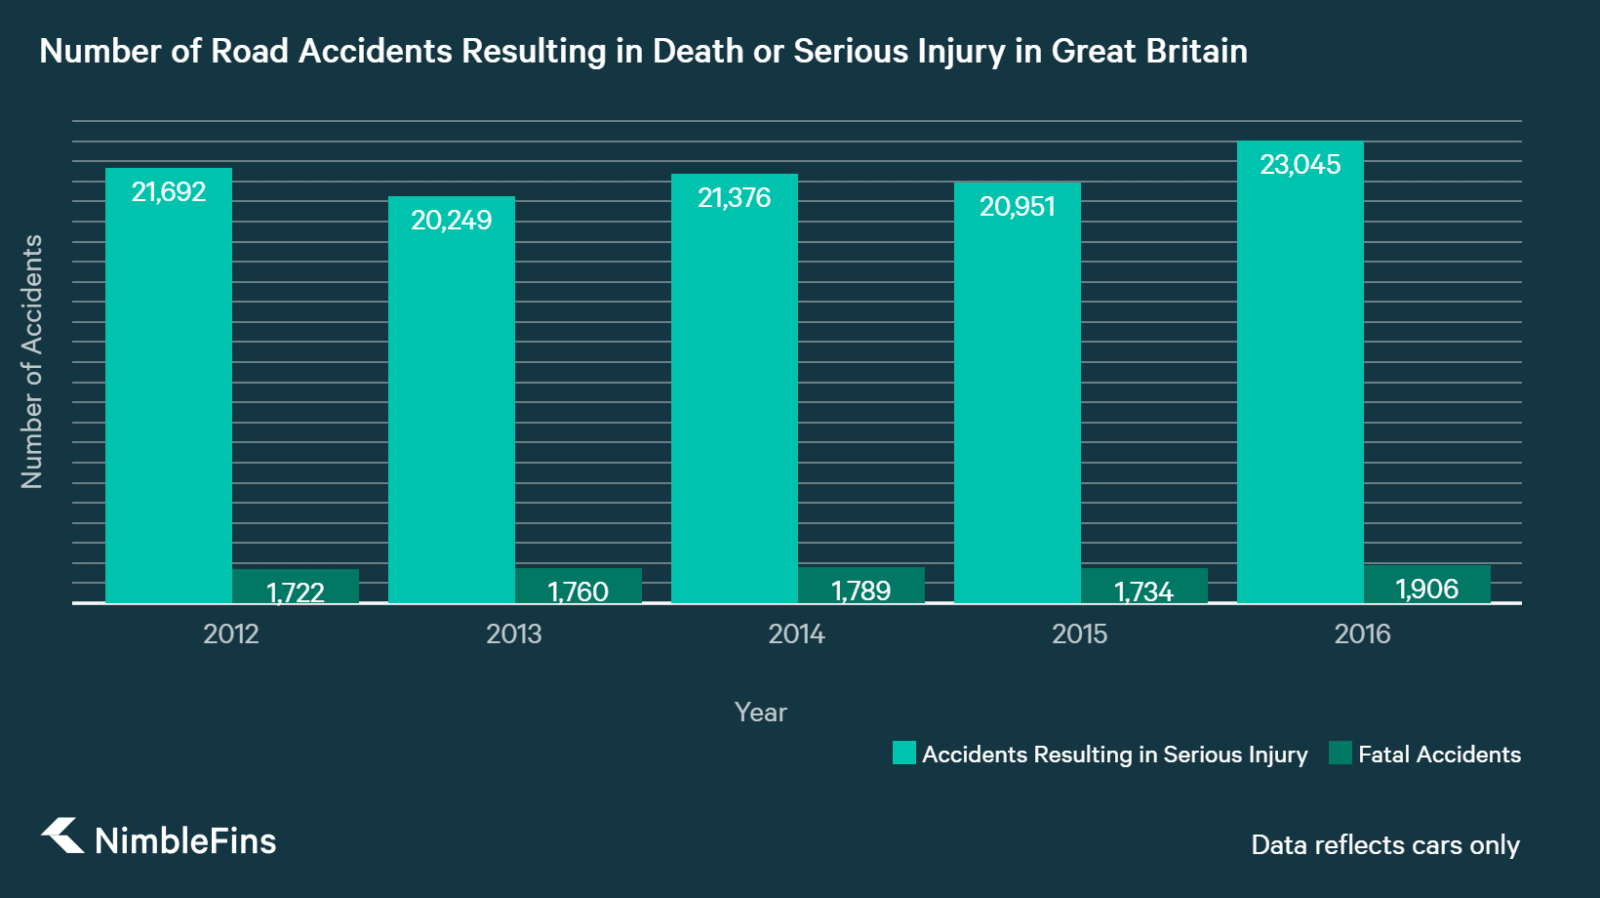 chart showing Number or Serious or Fatal Road Accidents in Great Britain